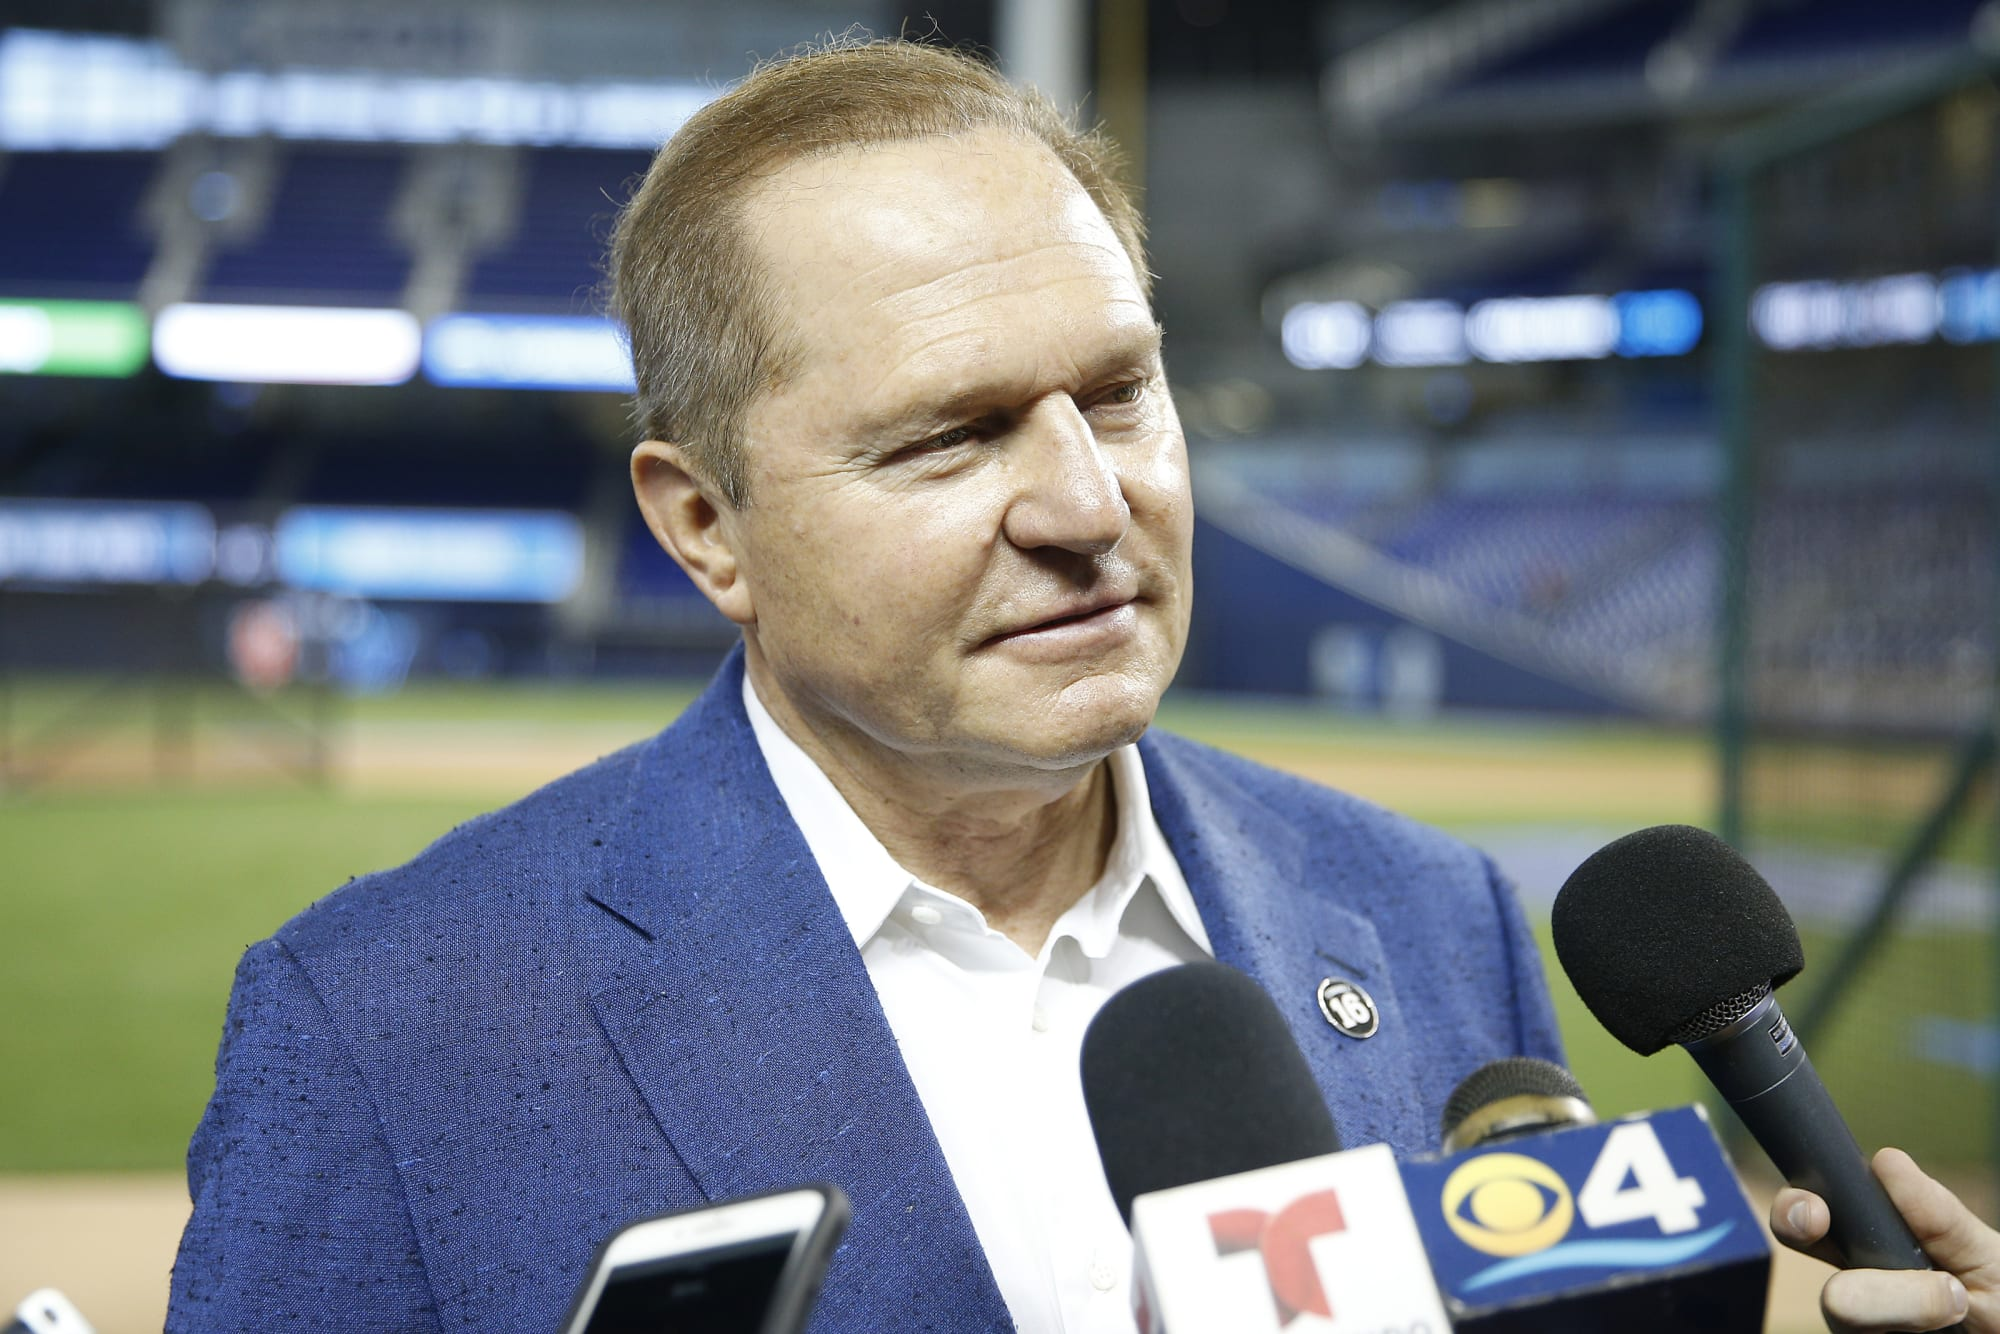 Scott Boras skewers MLB owners in memo to clients